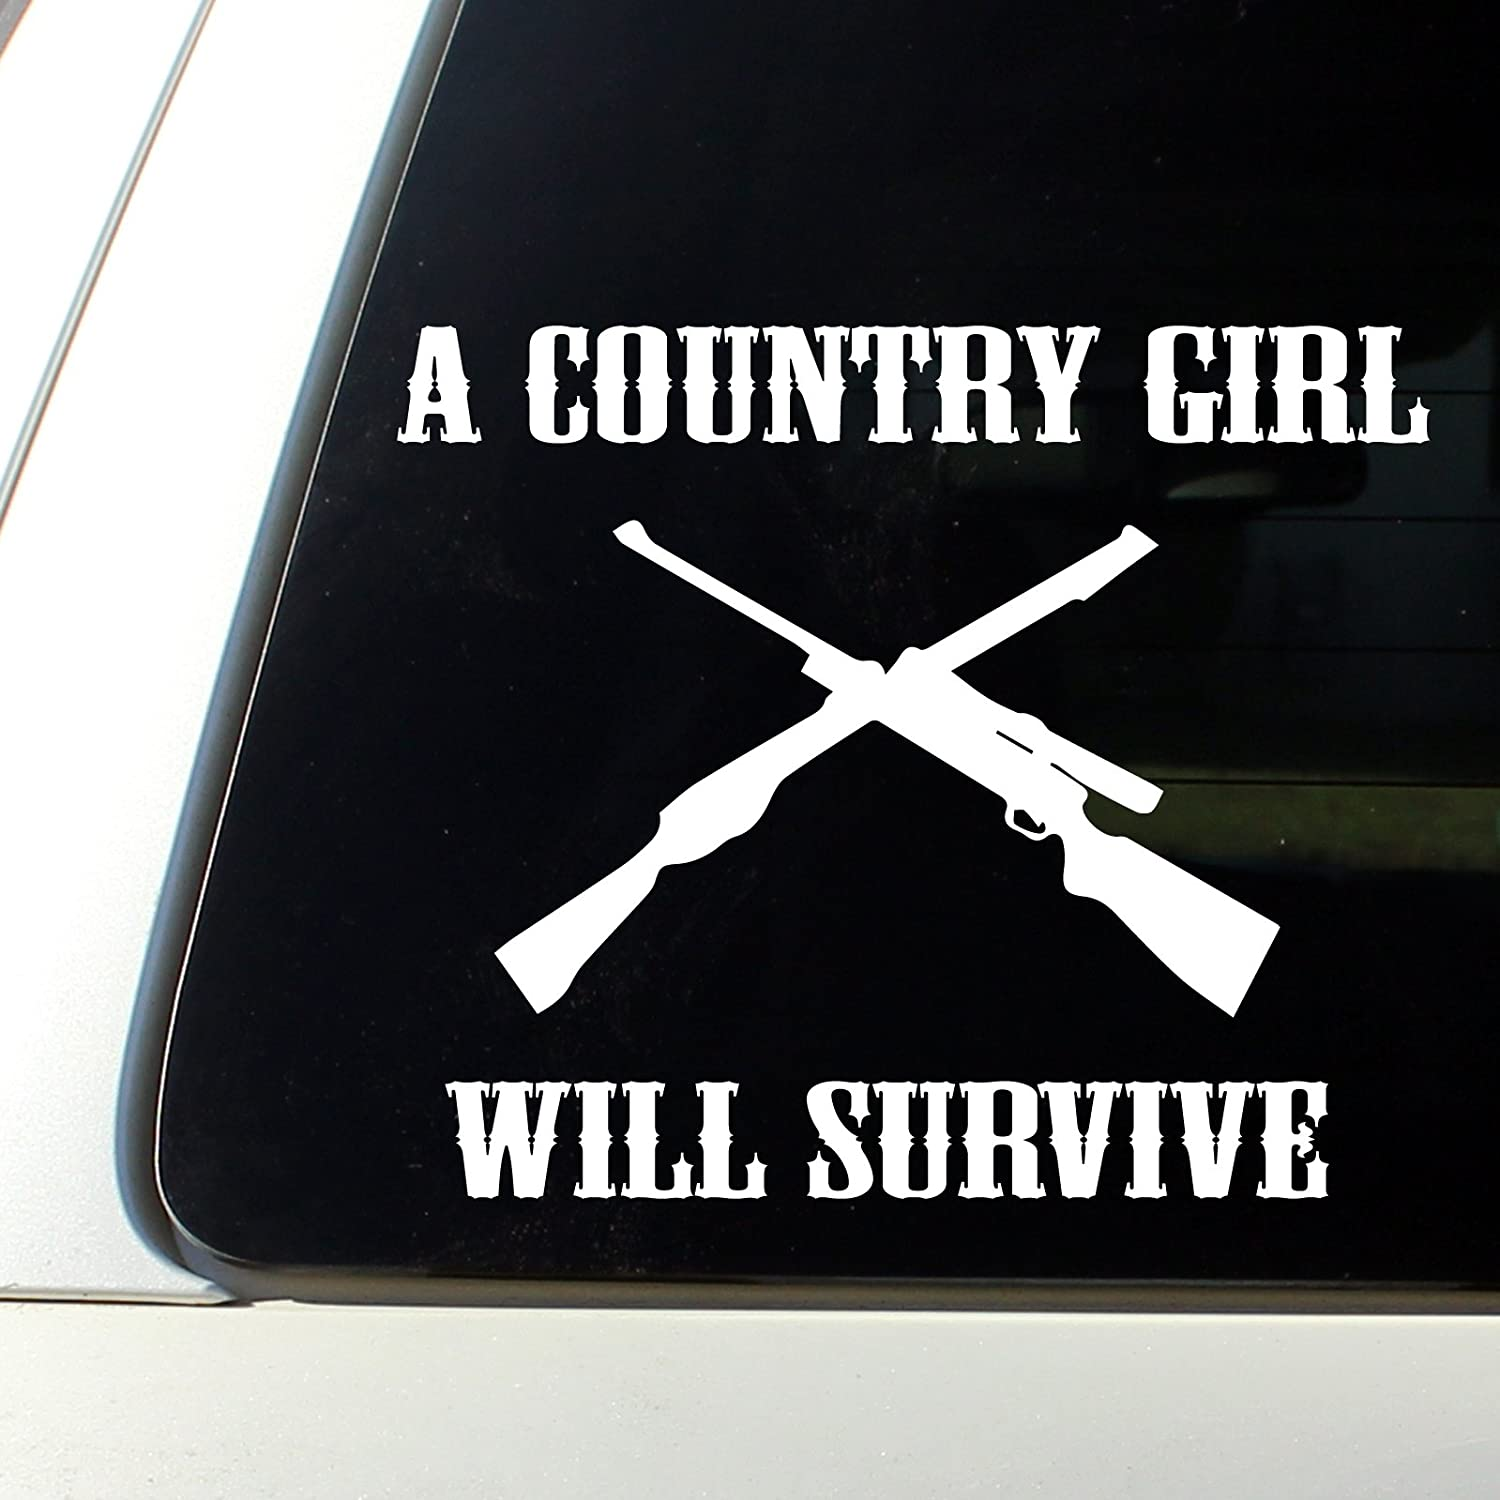 Amazoncom A Country Girl Will Surive Cowgirl Car Decal Bumper - Car sticker decal for girls